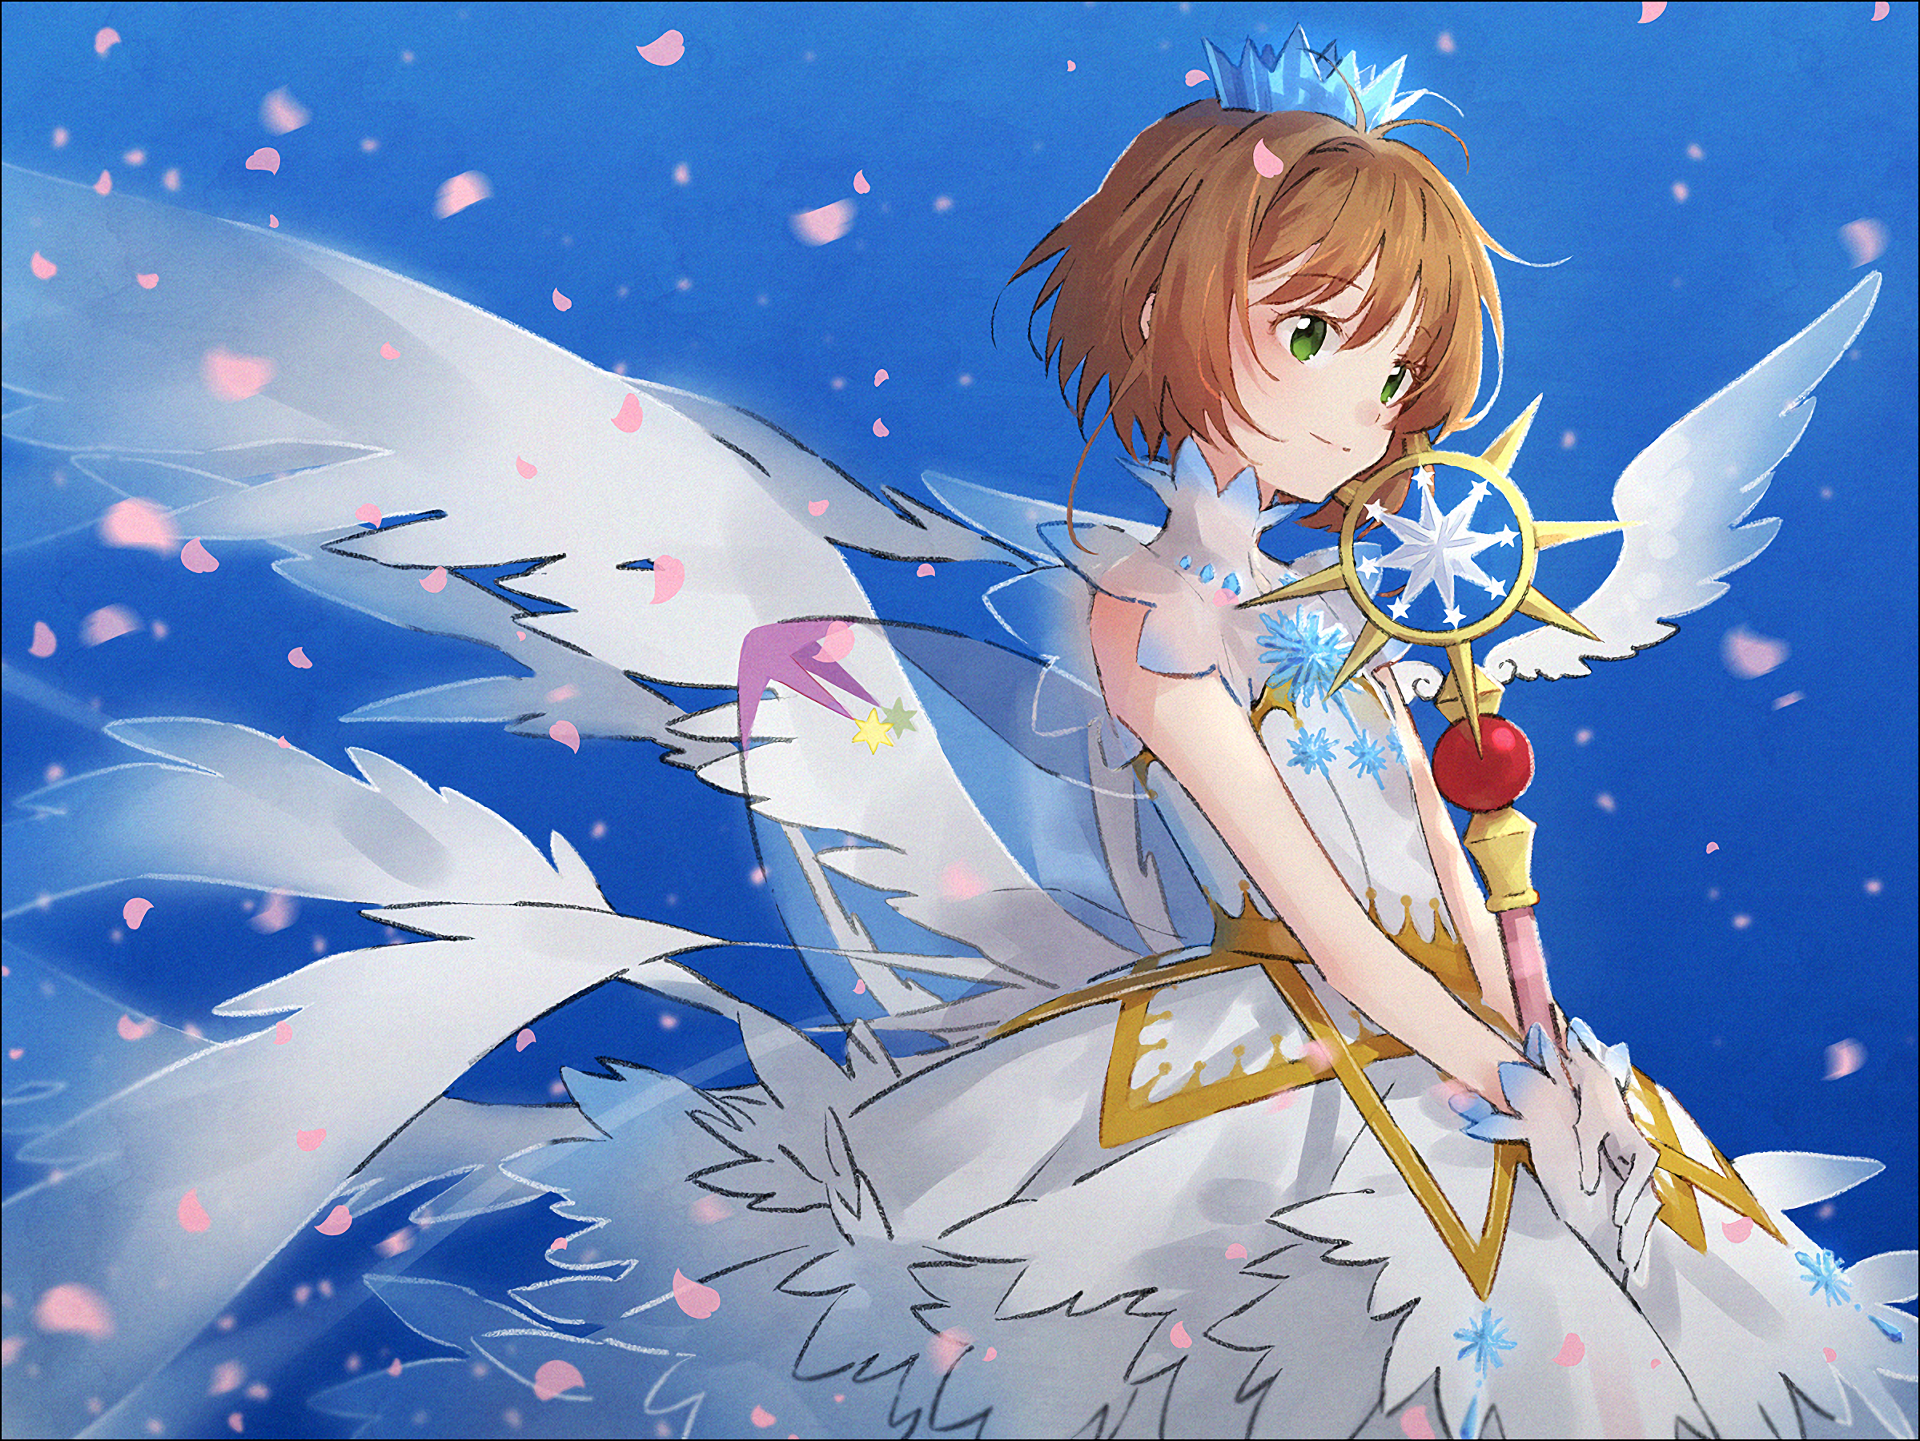 Sakura from Cardcaptor Sakura in a white dress, with the wing card.